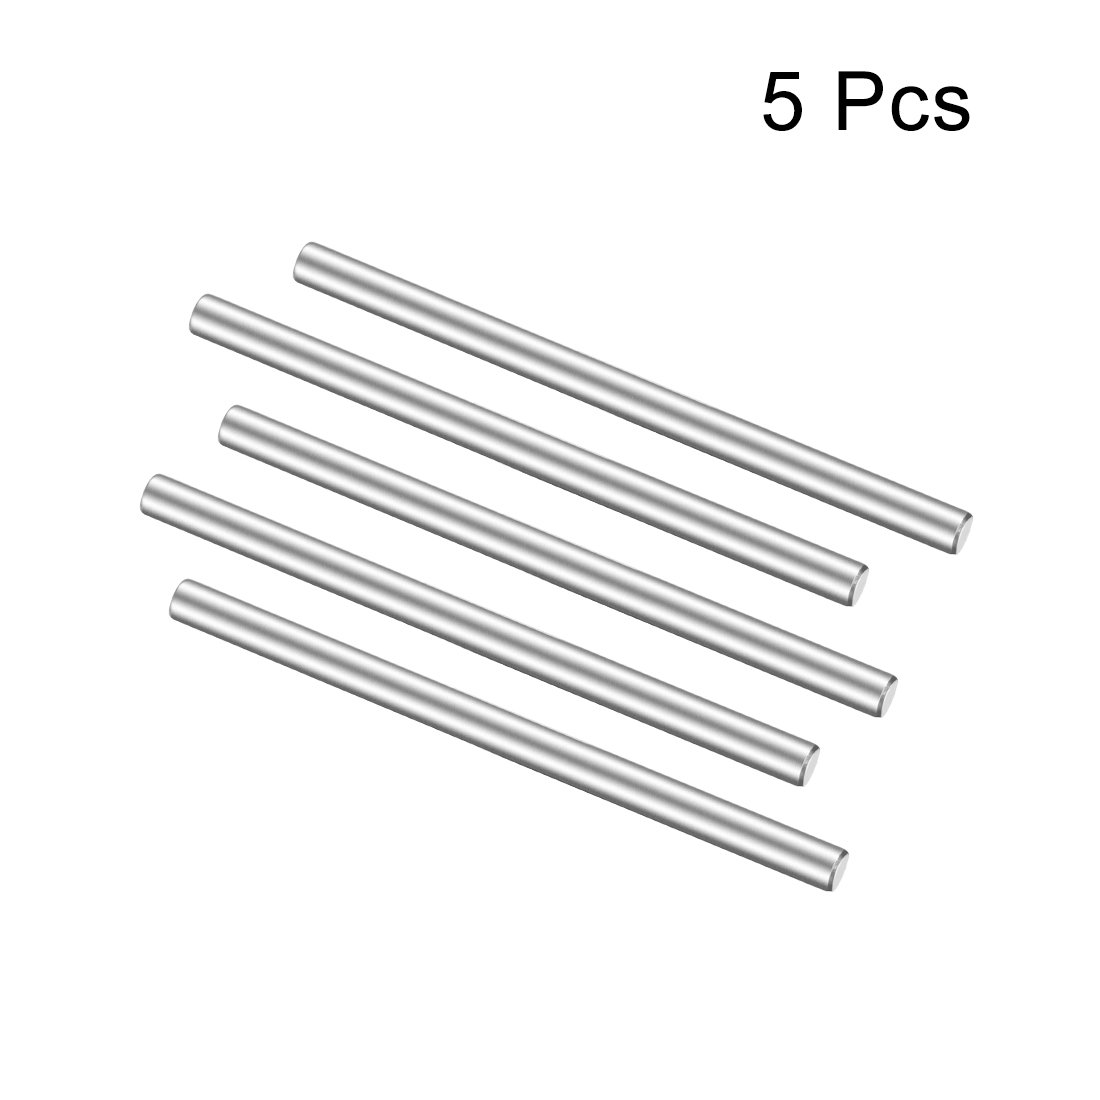 uxcell Stainless Steel Round Shaft Rod Axle 3mm x 50mm for RC Toy Car